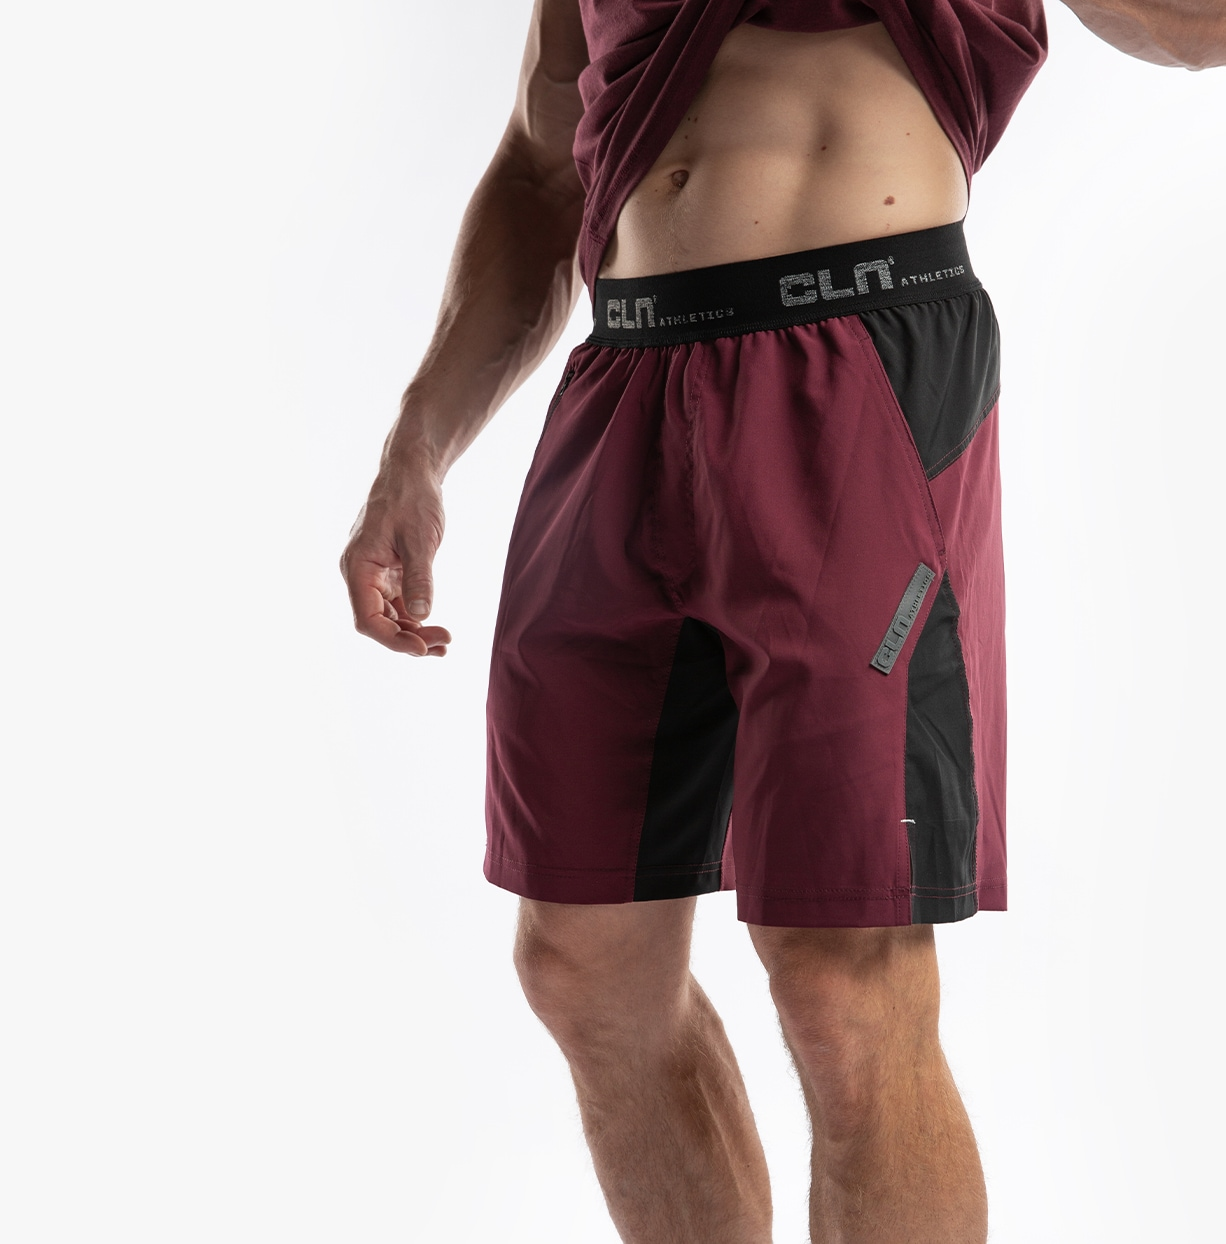 CLN Injection Shorts Burgundy